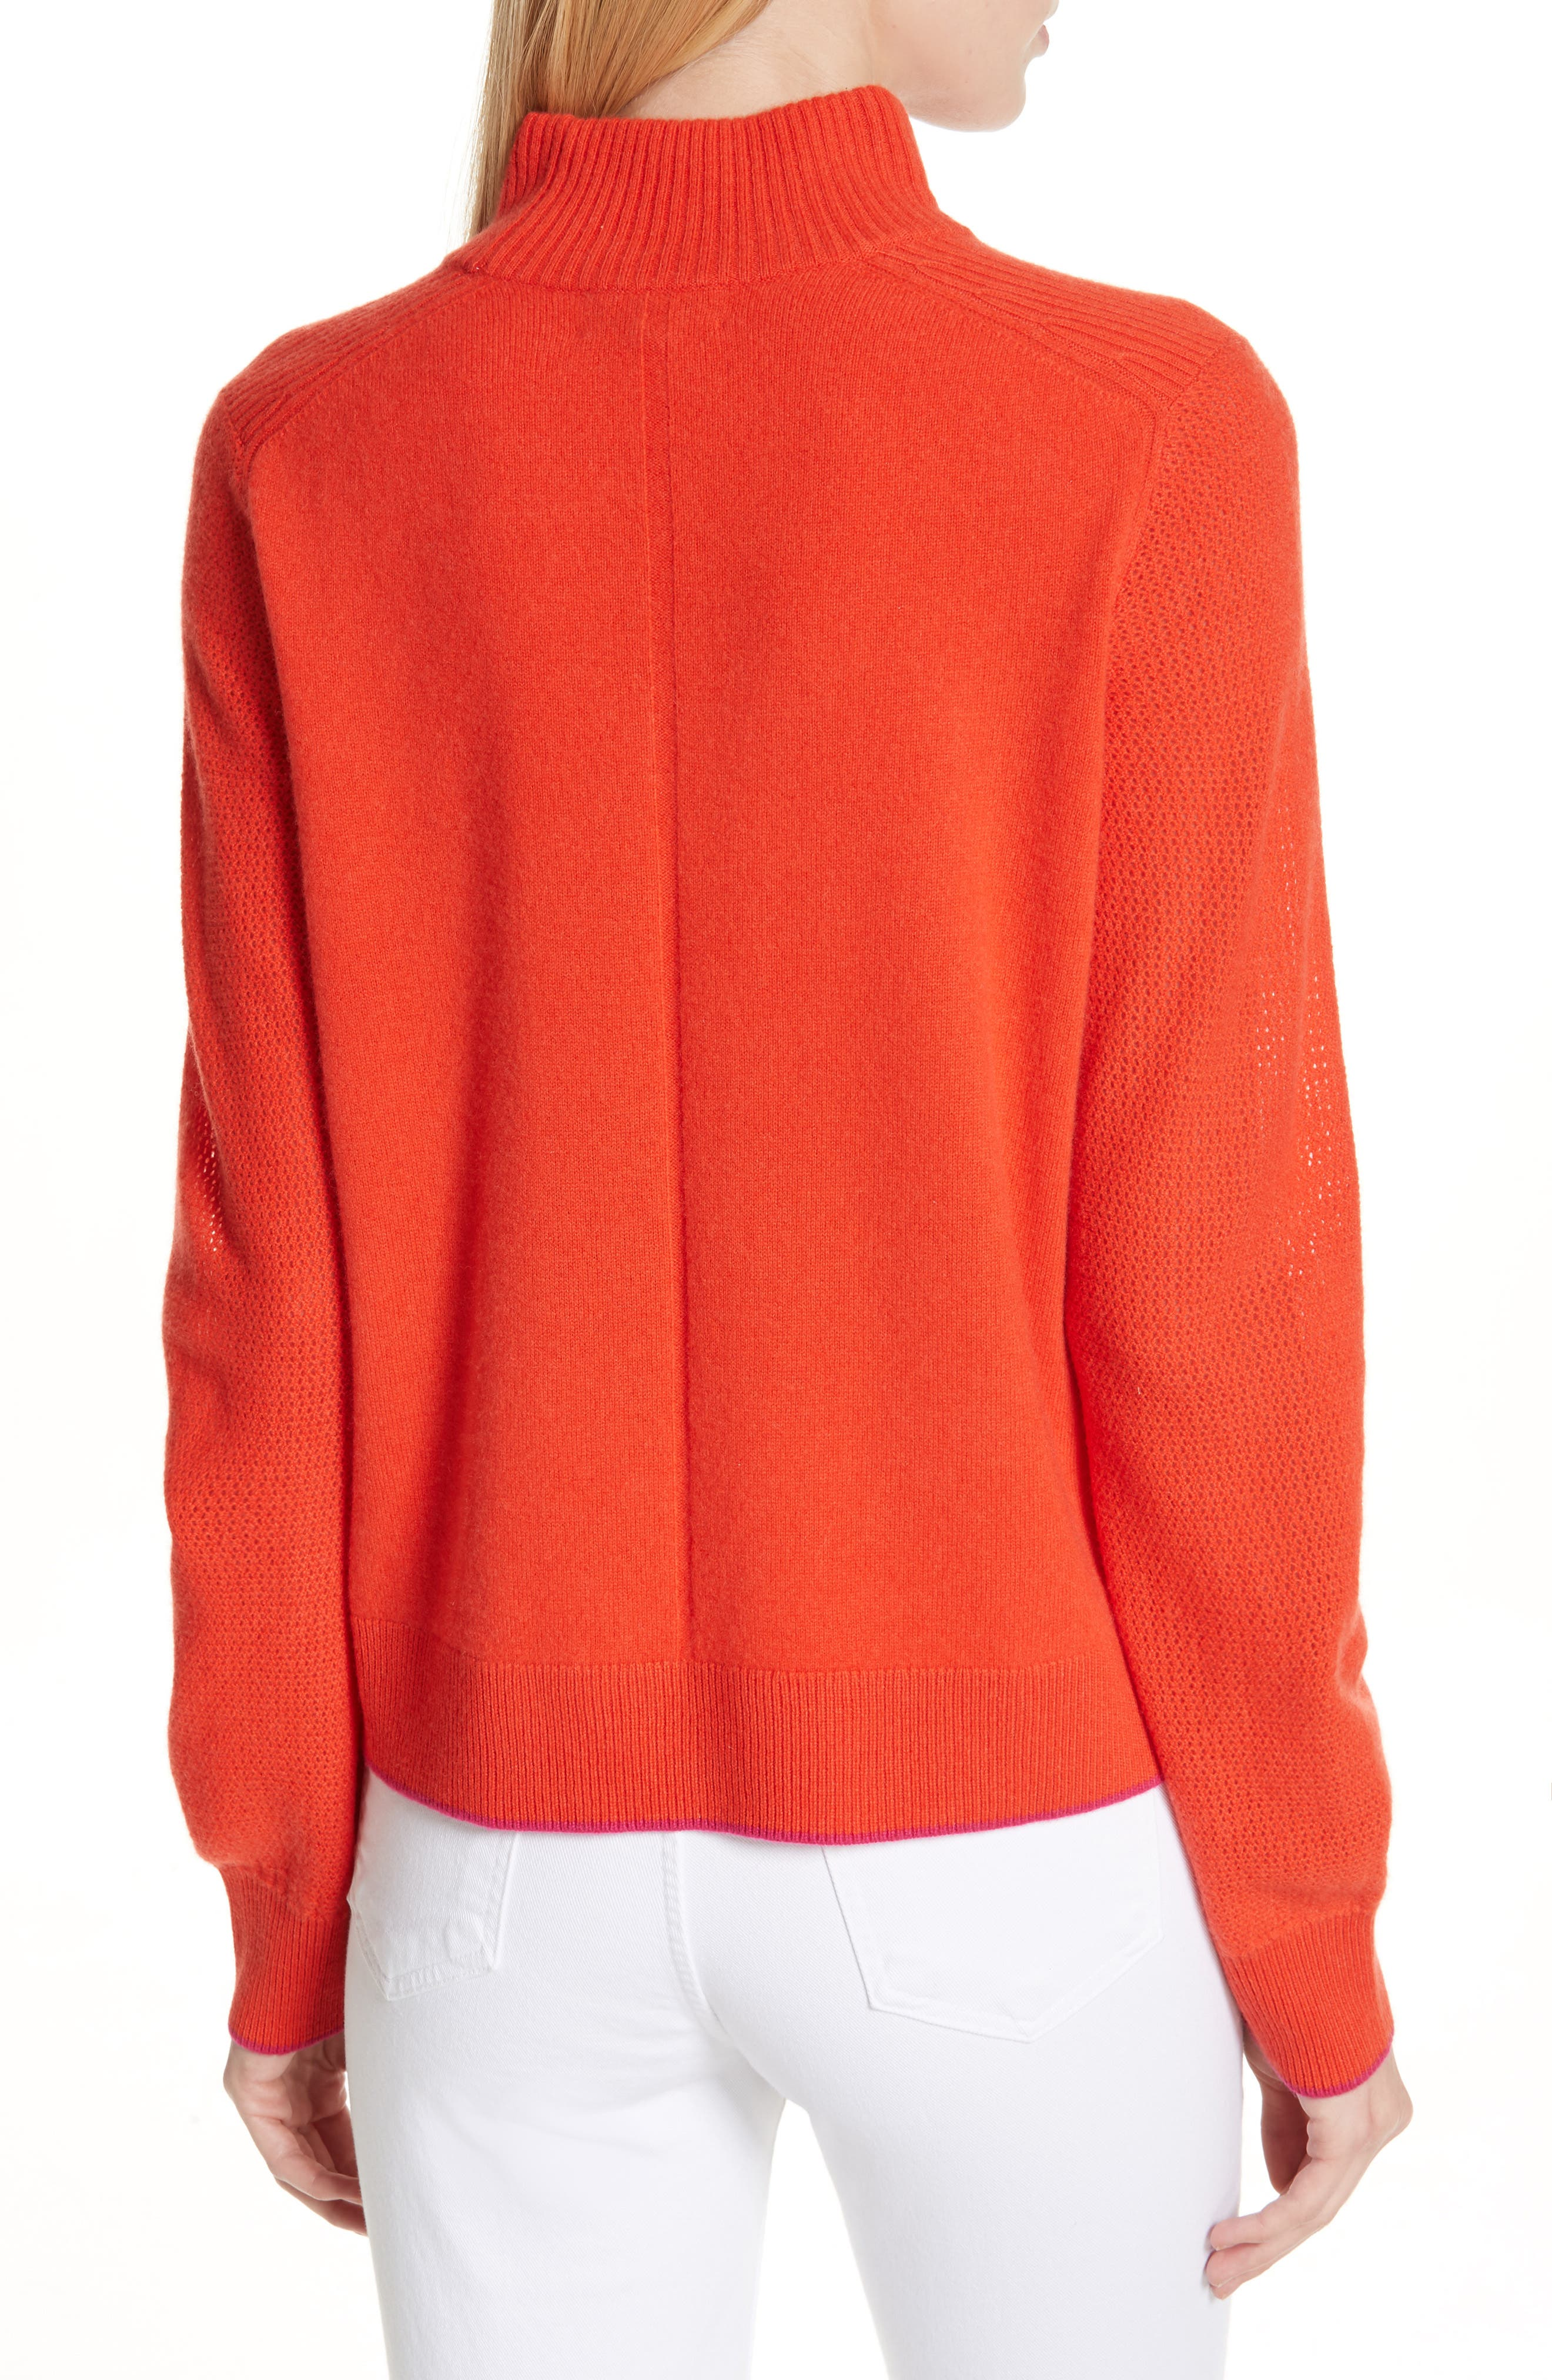 Yorke Cashmere Sweater,                             Alternate thumbnail 2, color,                             RED